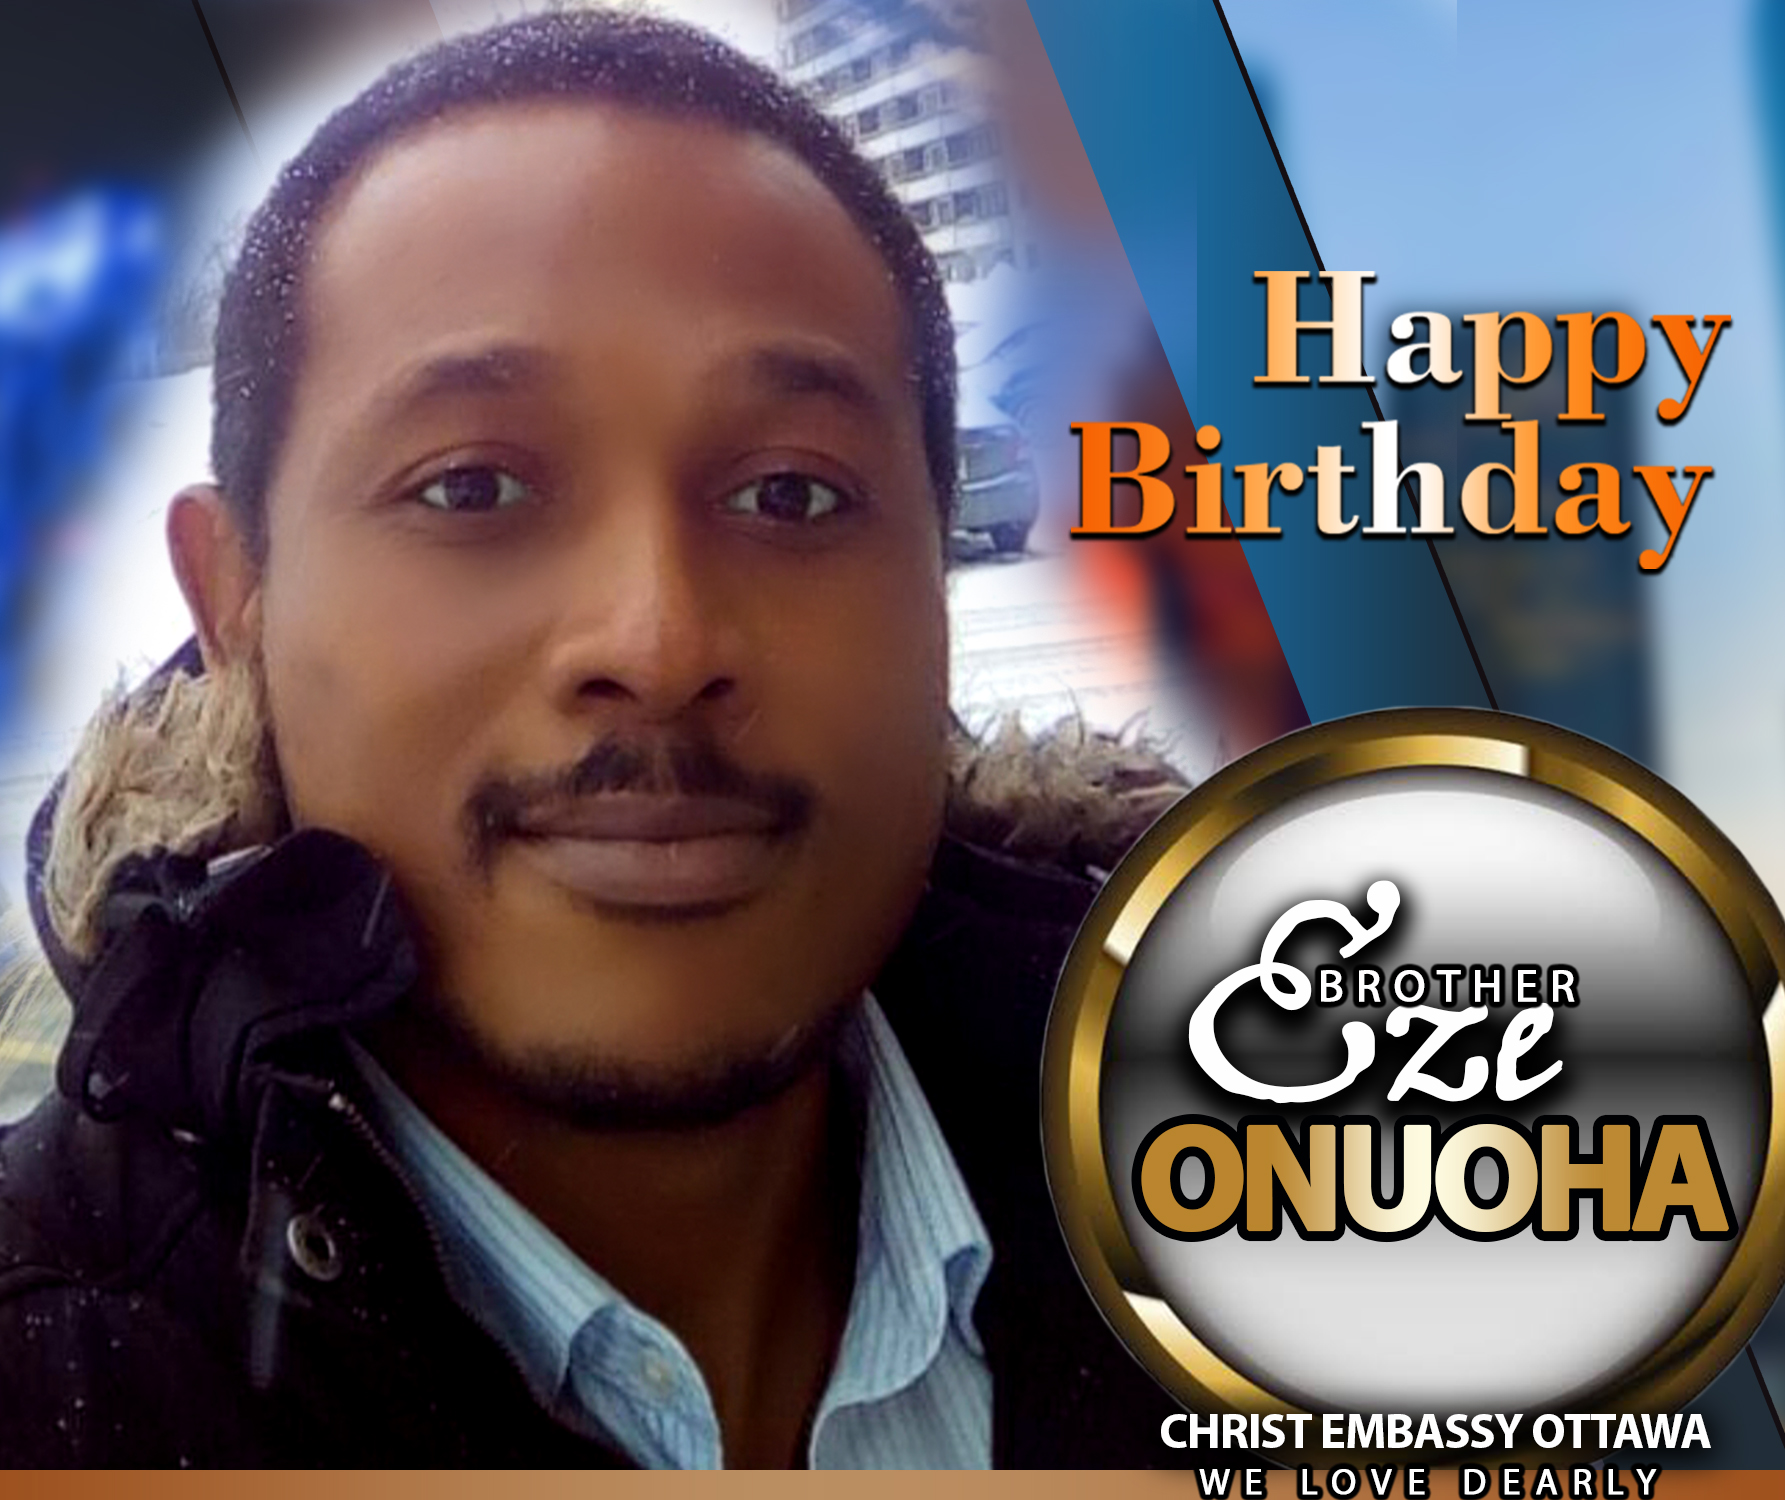 Happy Birthday dear Brother Eze.